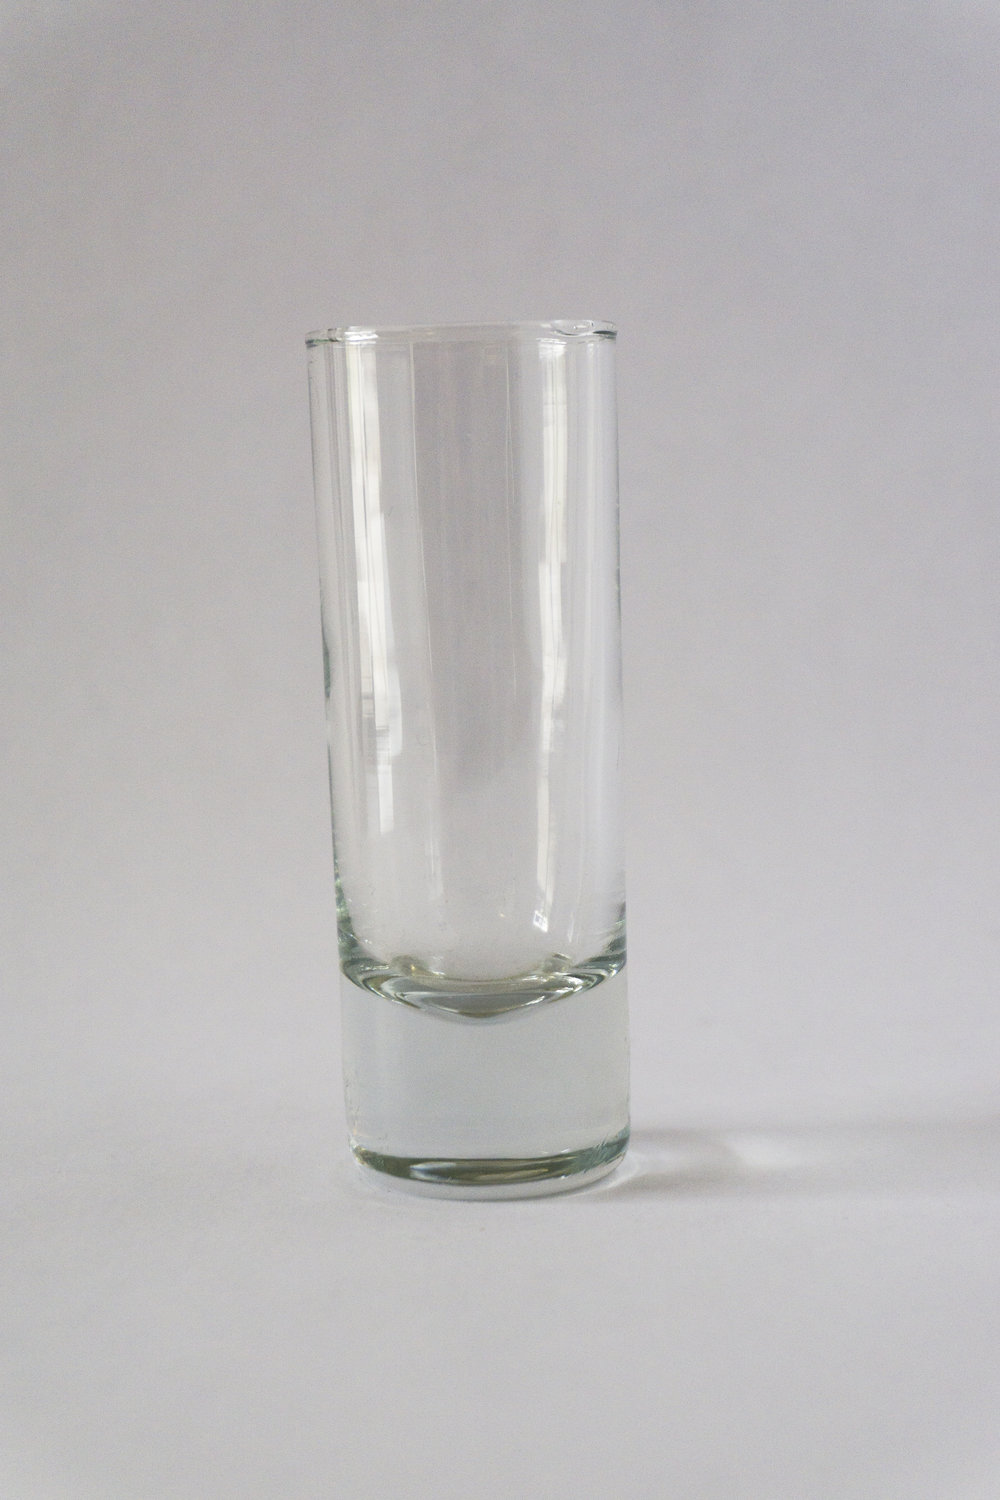 2.5 oz. Tequila Shot  Glass $0.70 each